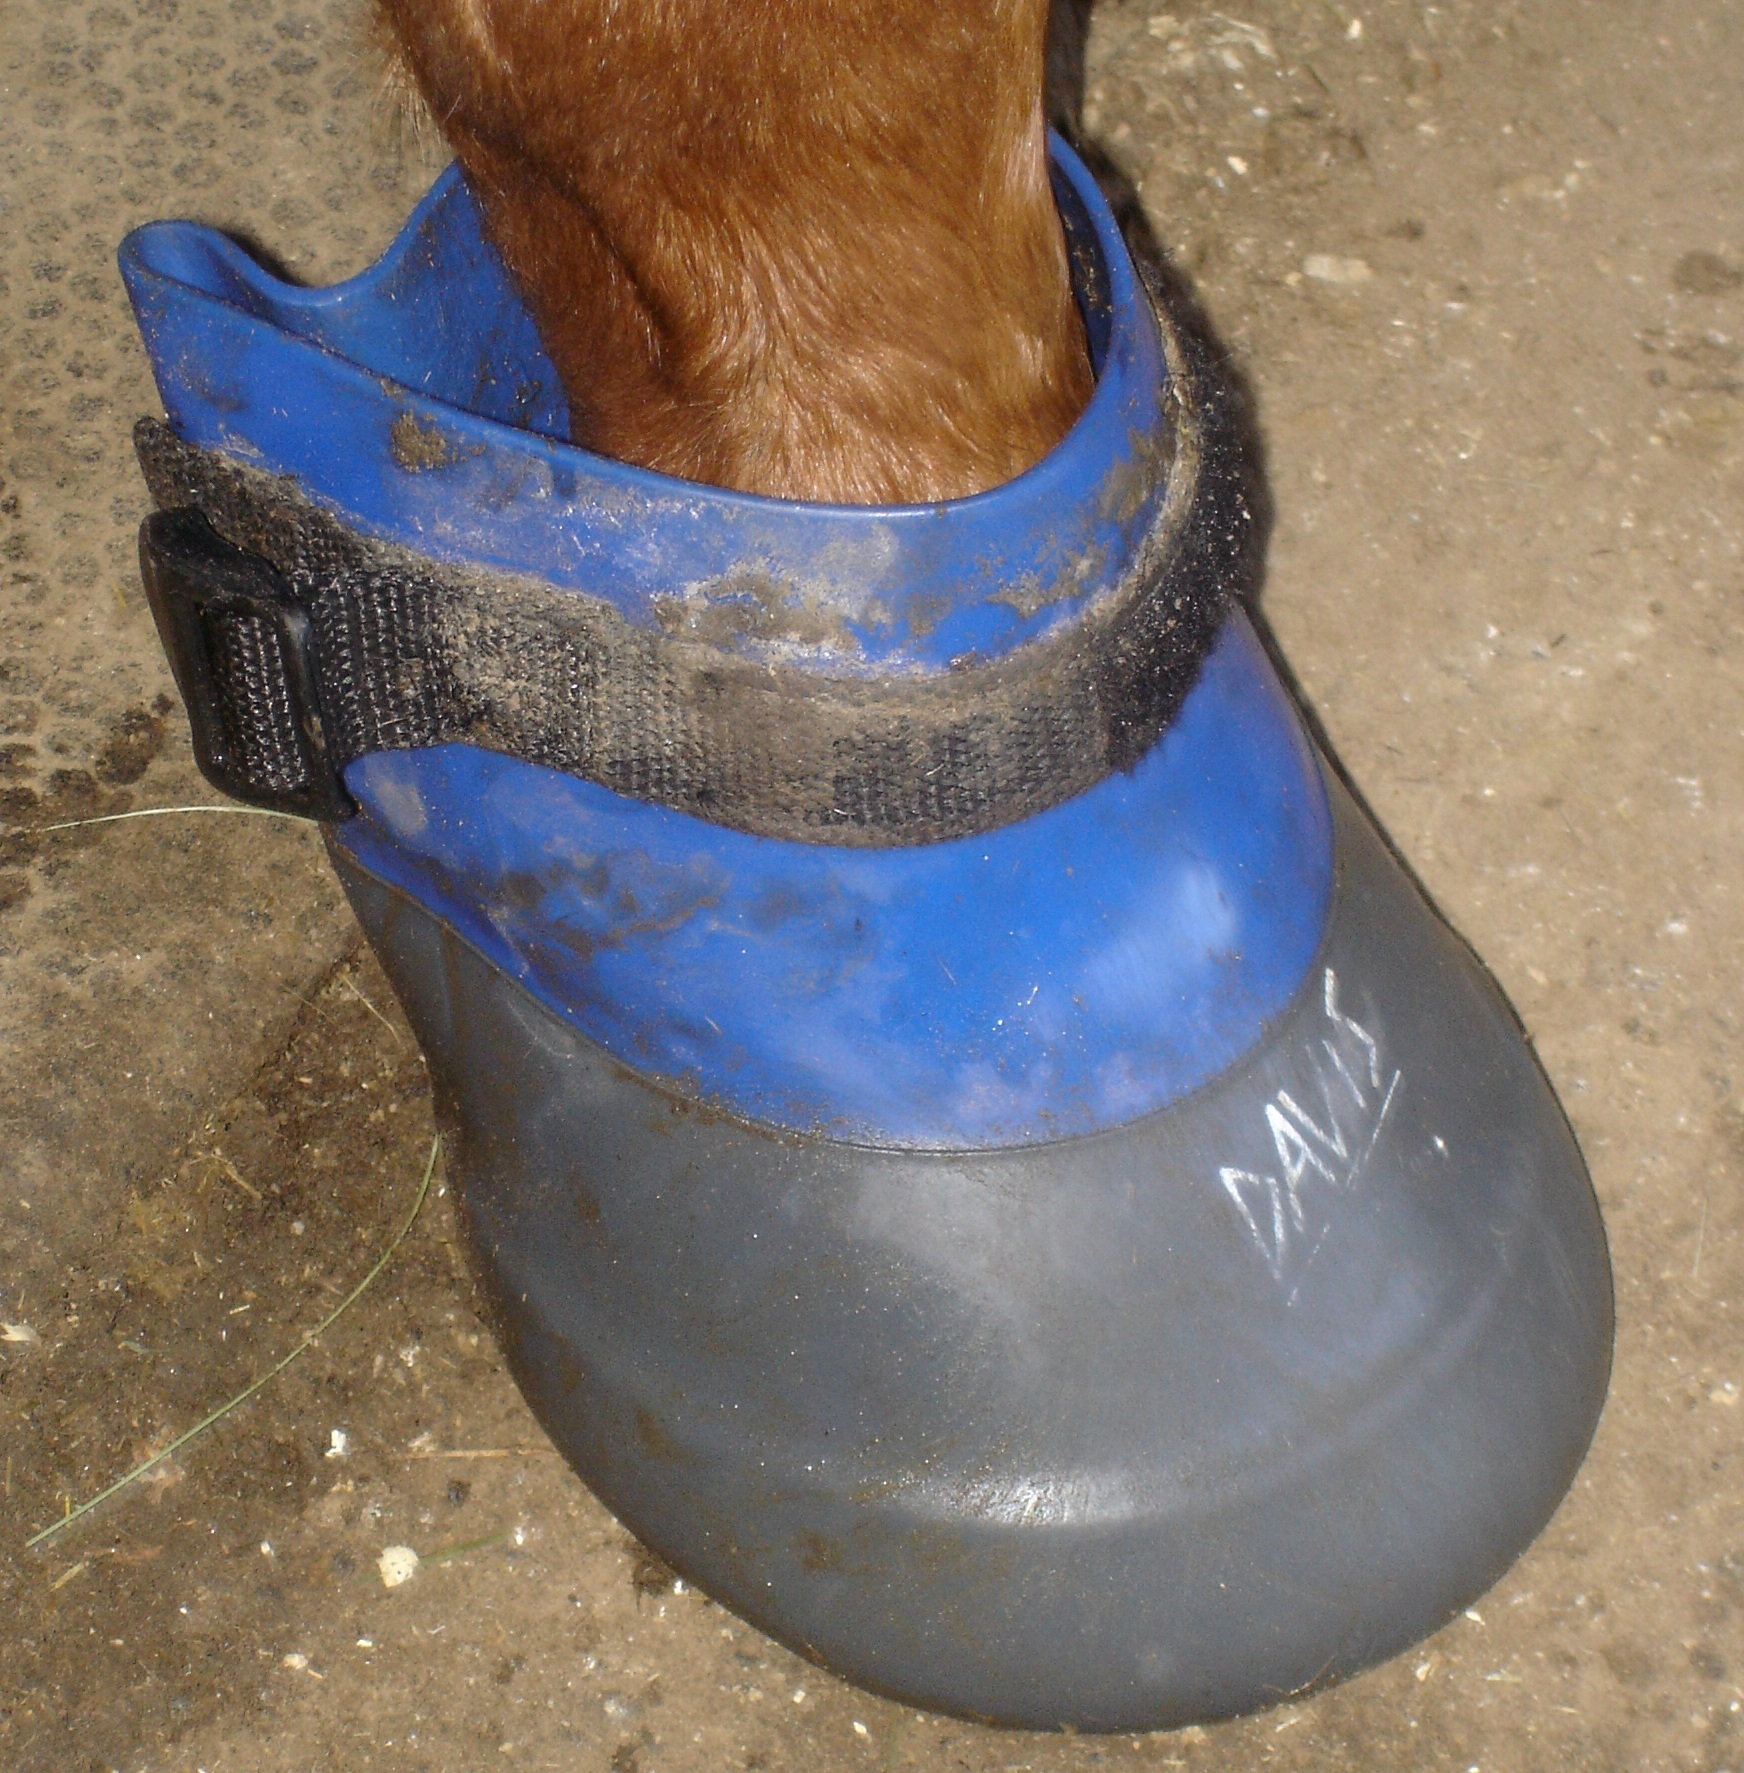 Soaking a horse's hoof in Epsom salt and warm water to help draw out an abscess.